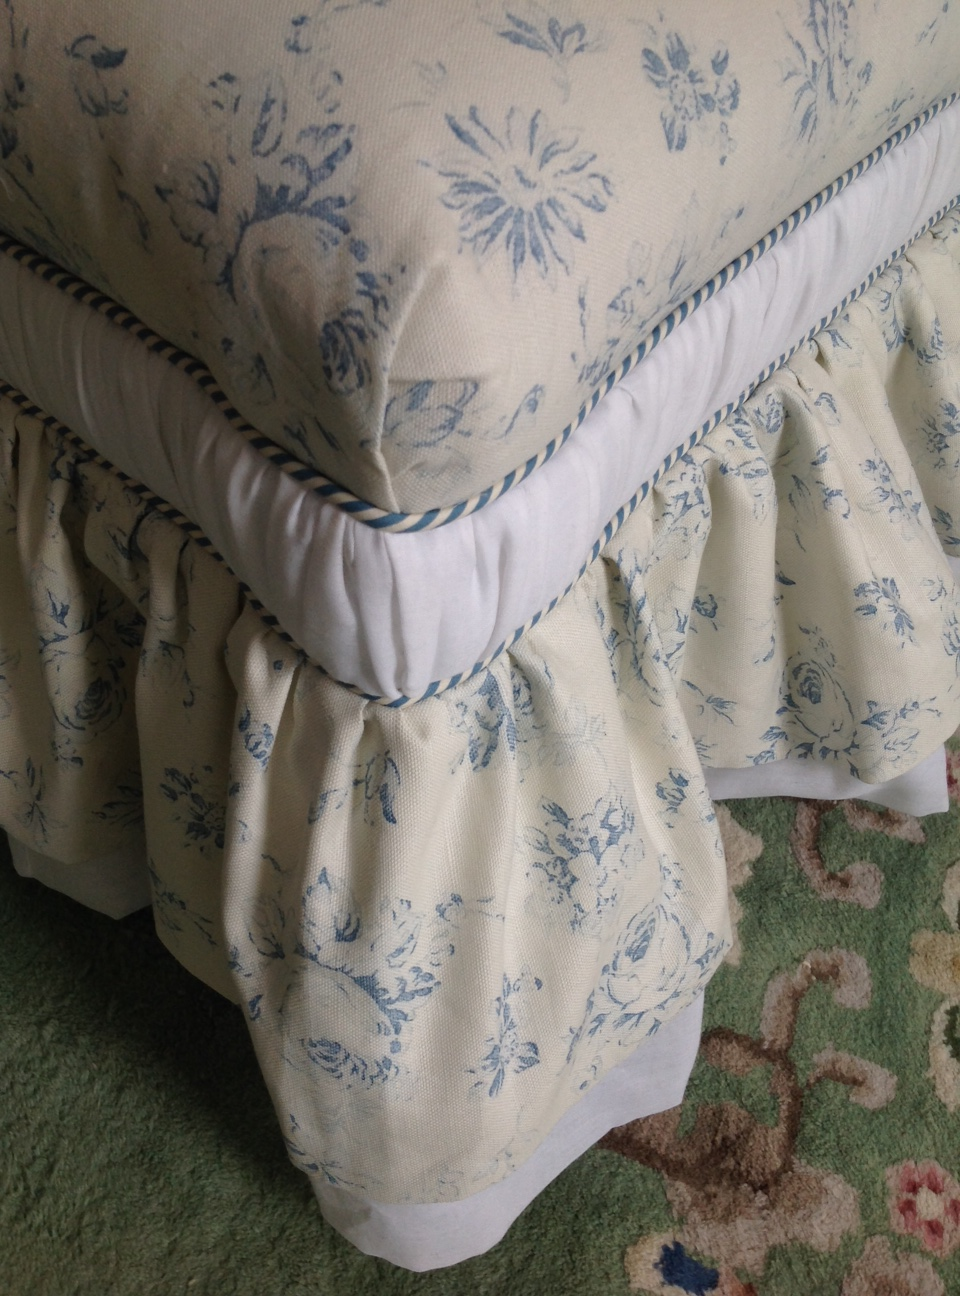 Ralph Lauren linen in blue roses on slipper chair